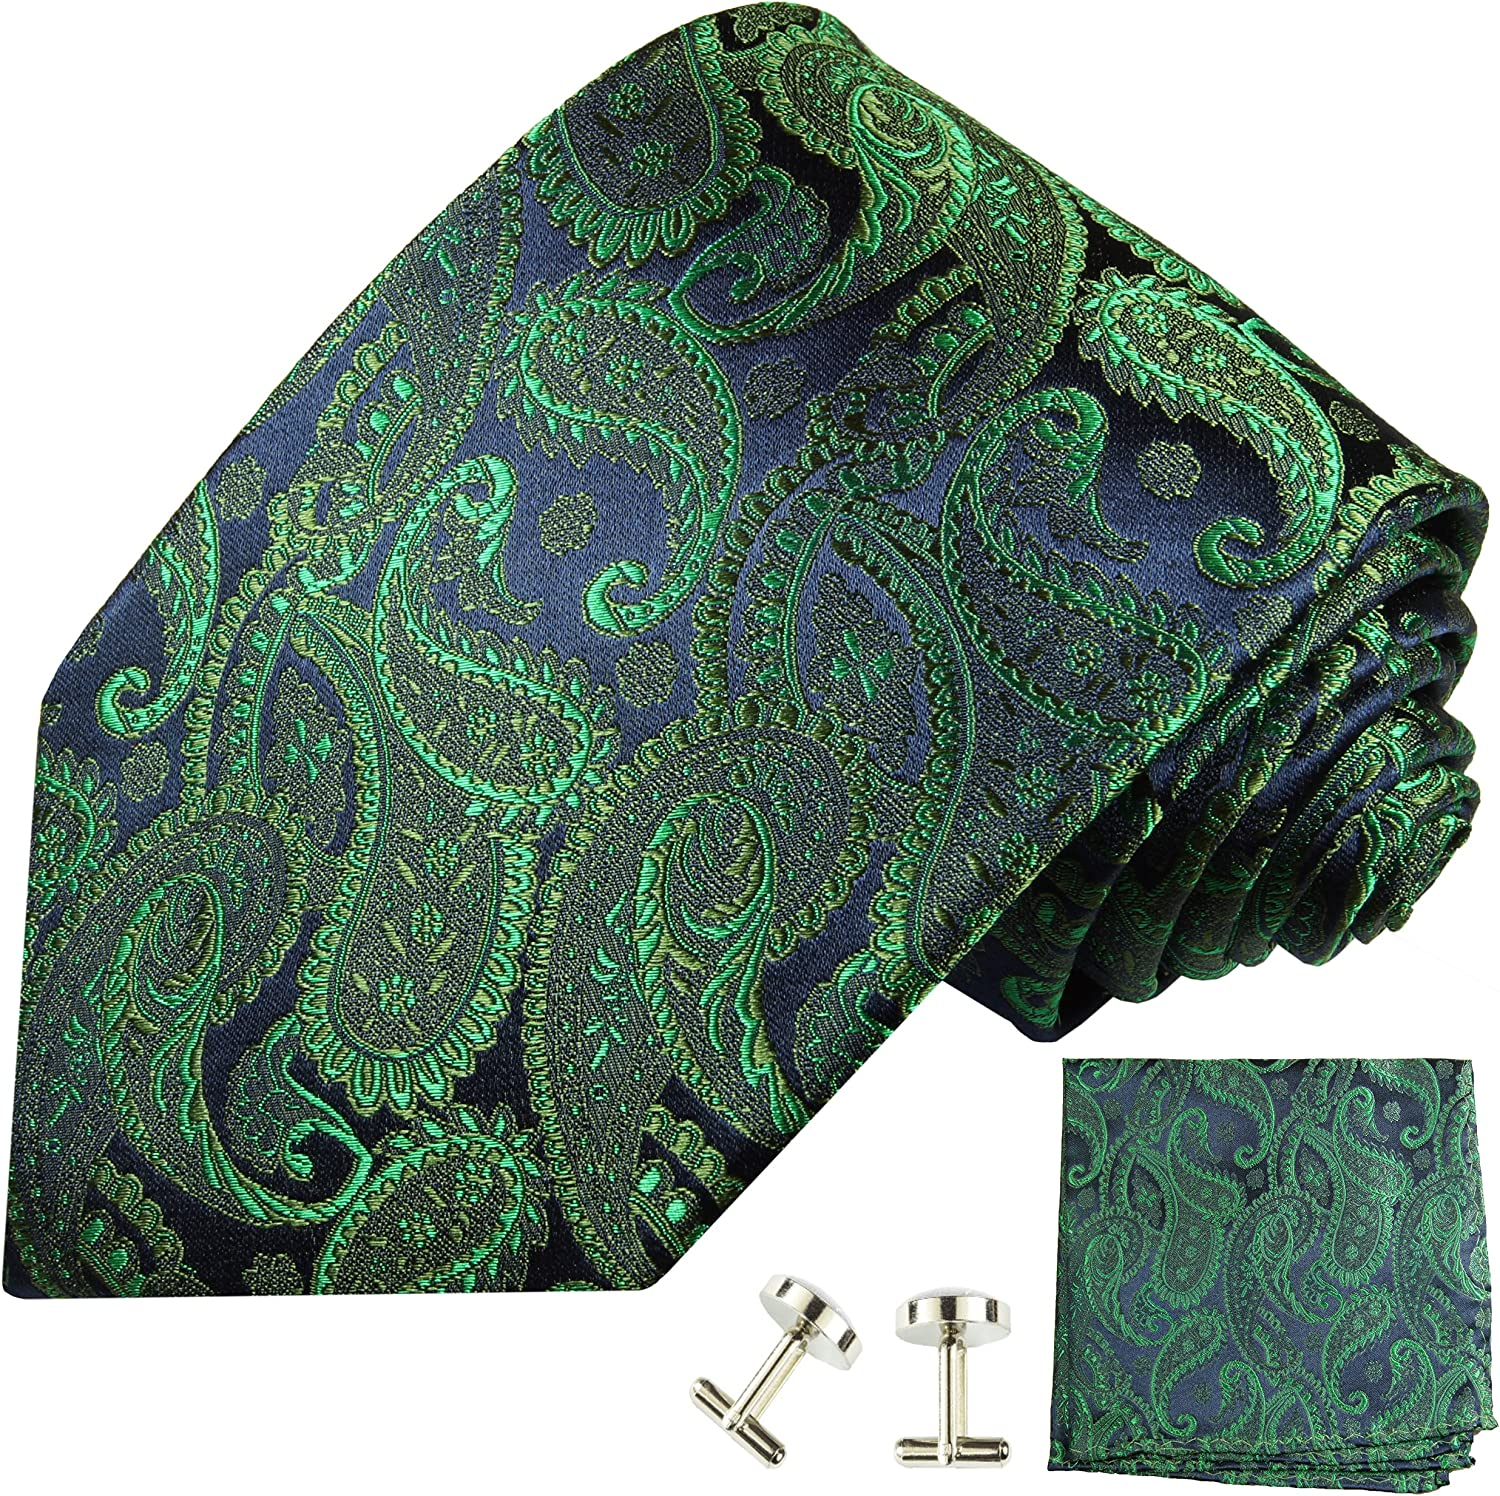 Emerald Paisley Silk Tie with Pocket Square and Cufflinks